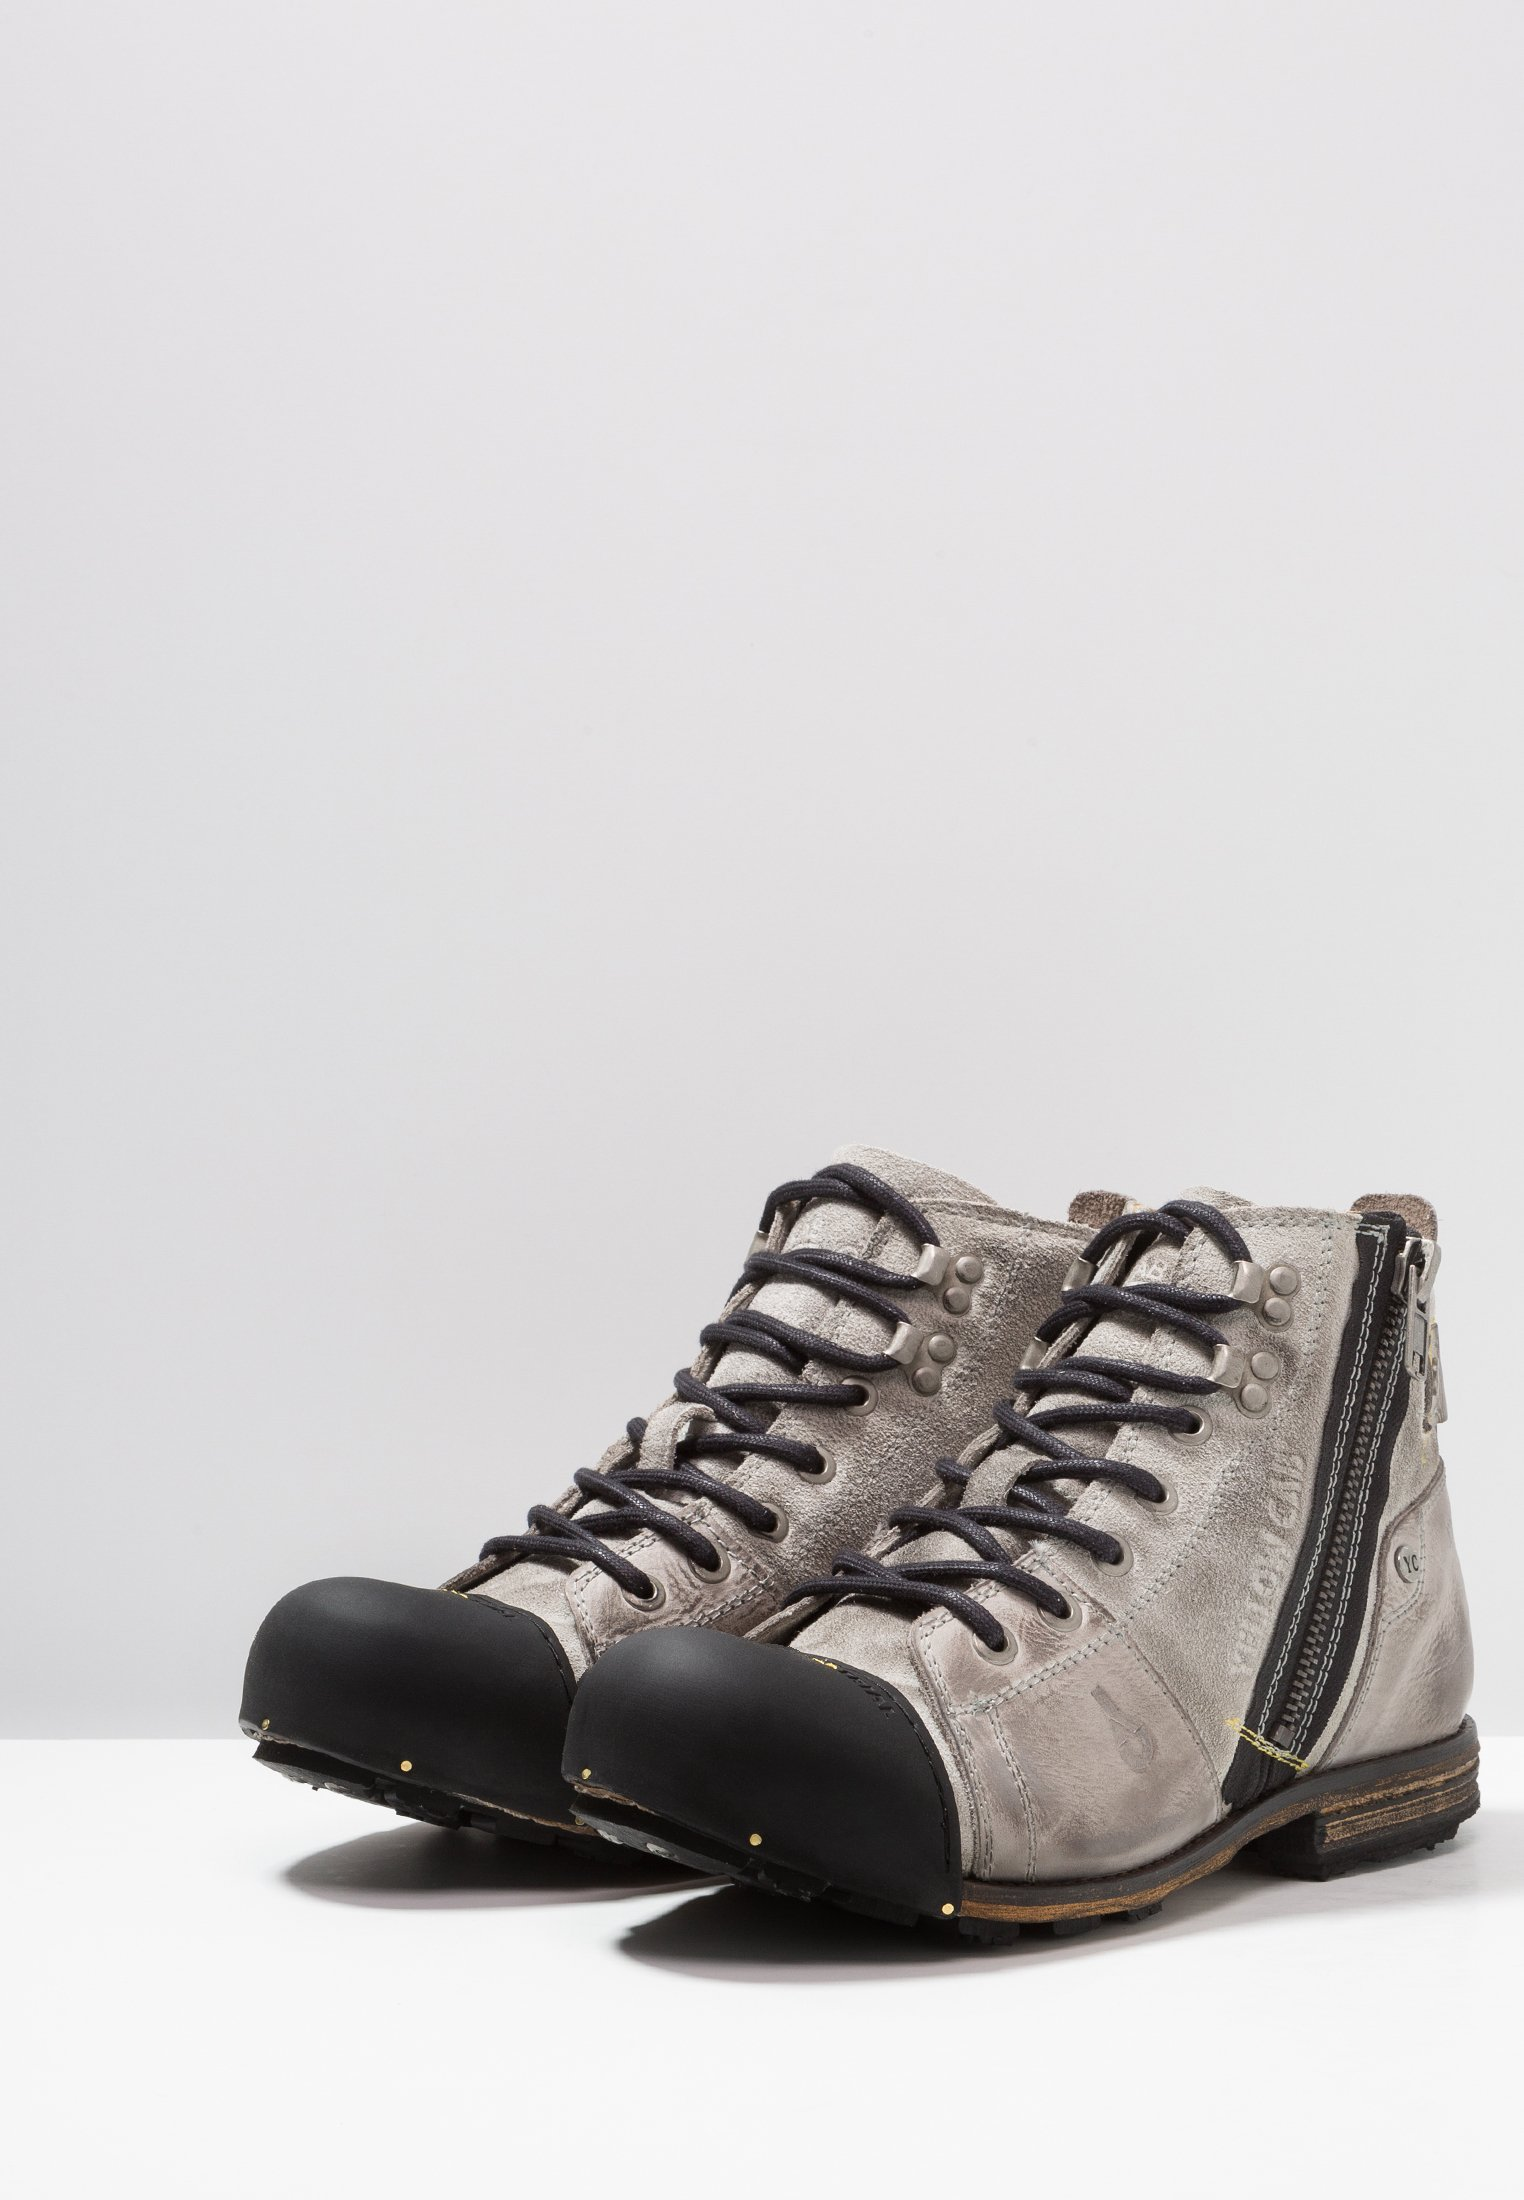 Yellow Cab Industrial - Bottines À Lacets Moss